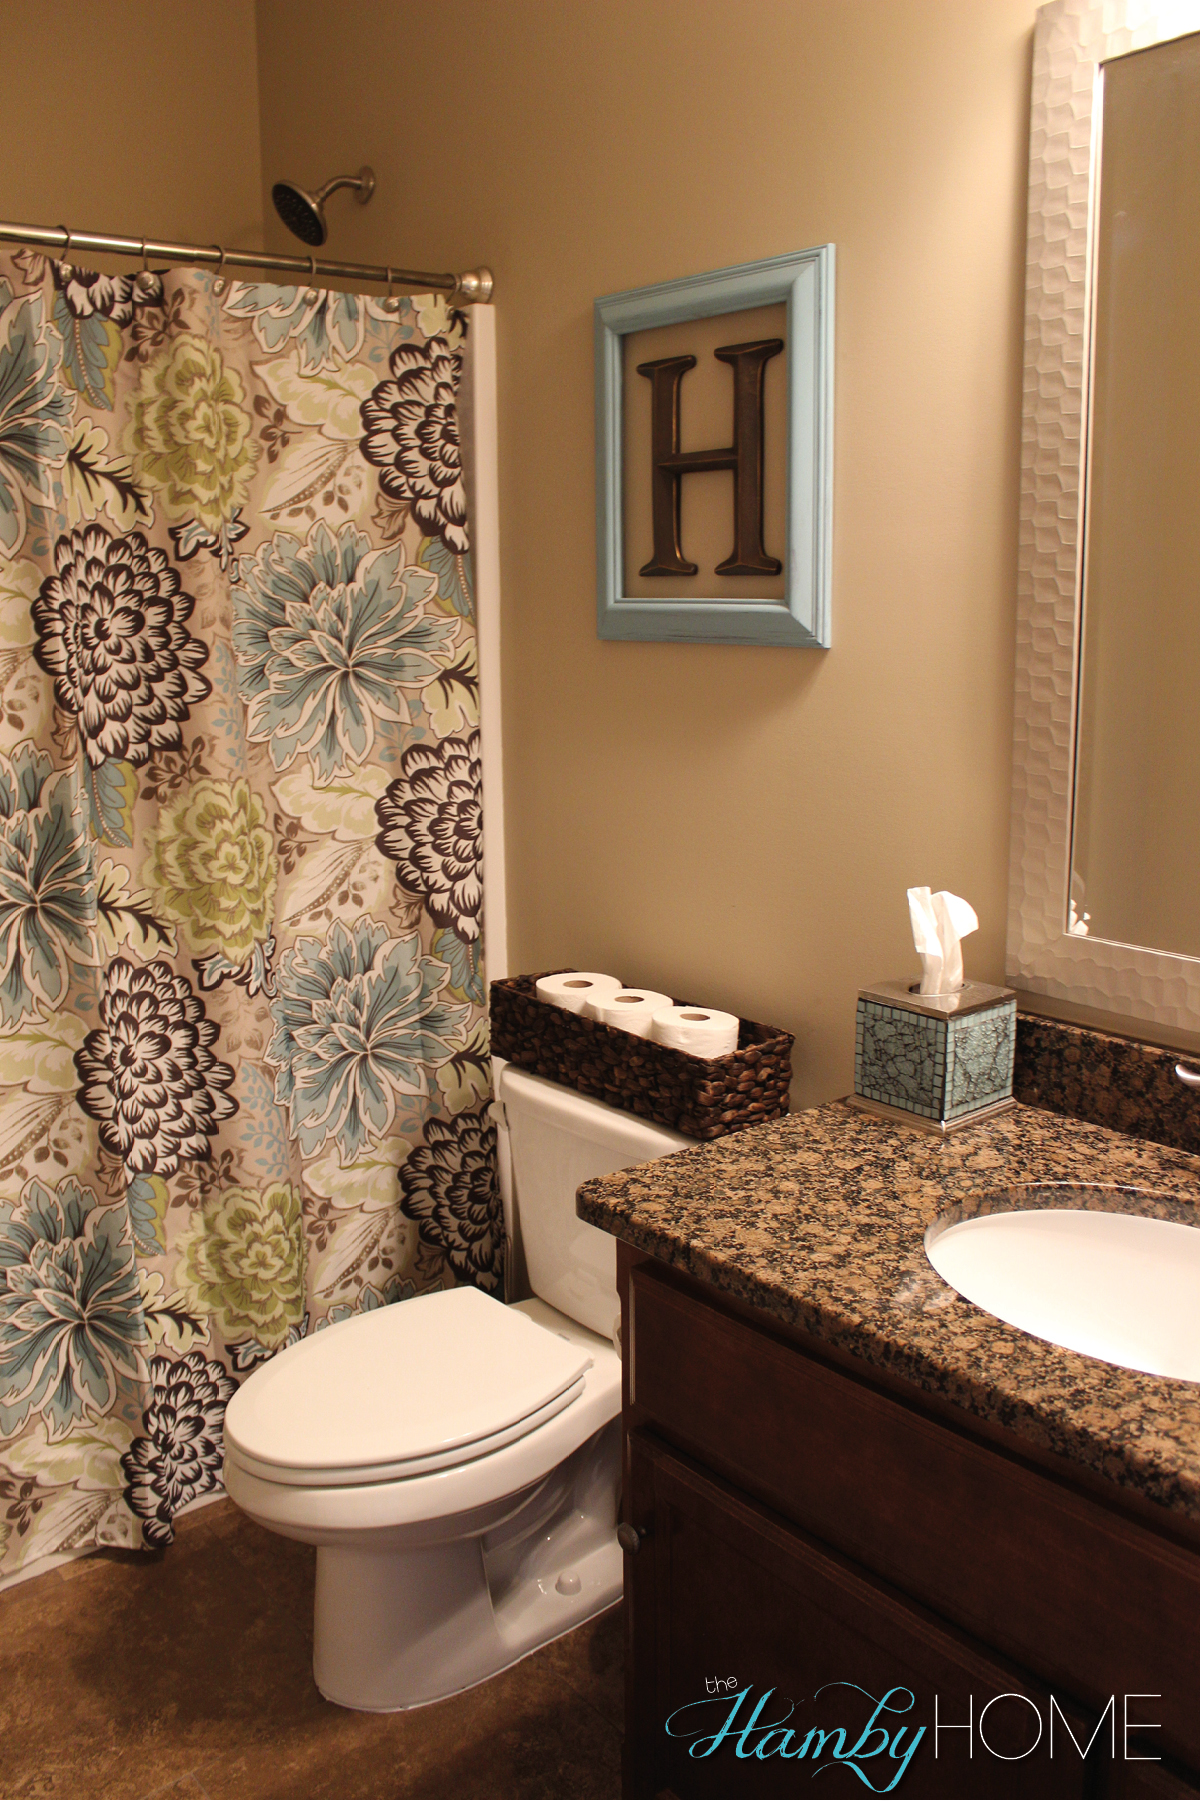 Tgif house tour guest bathroom the hamby home for Small bathroom decorating themes